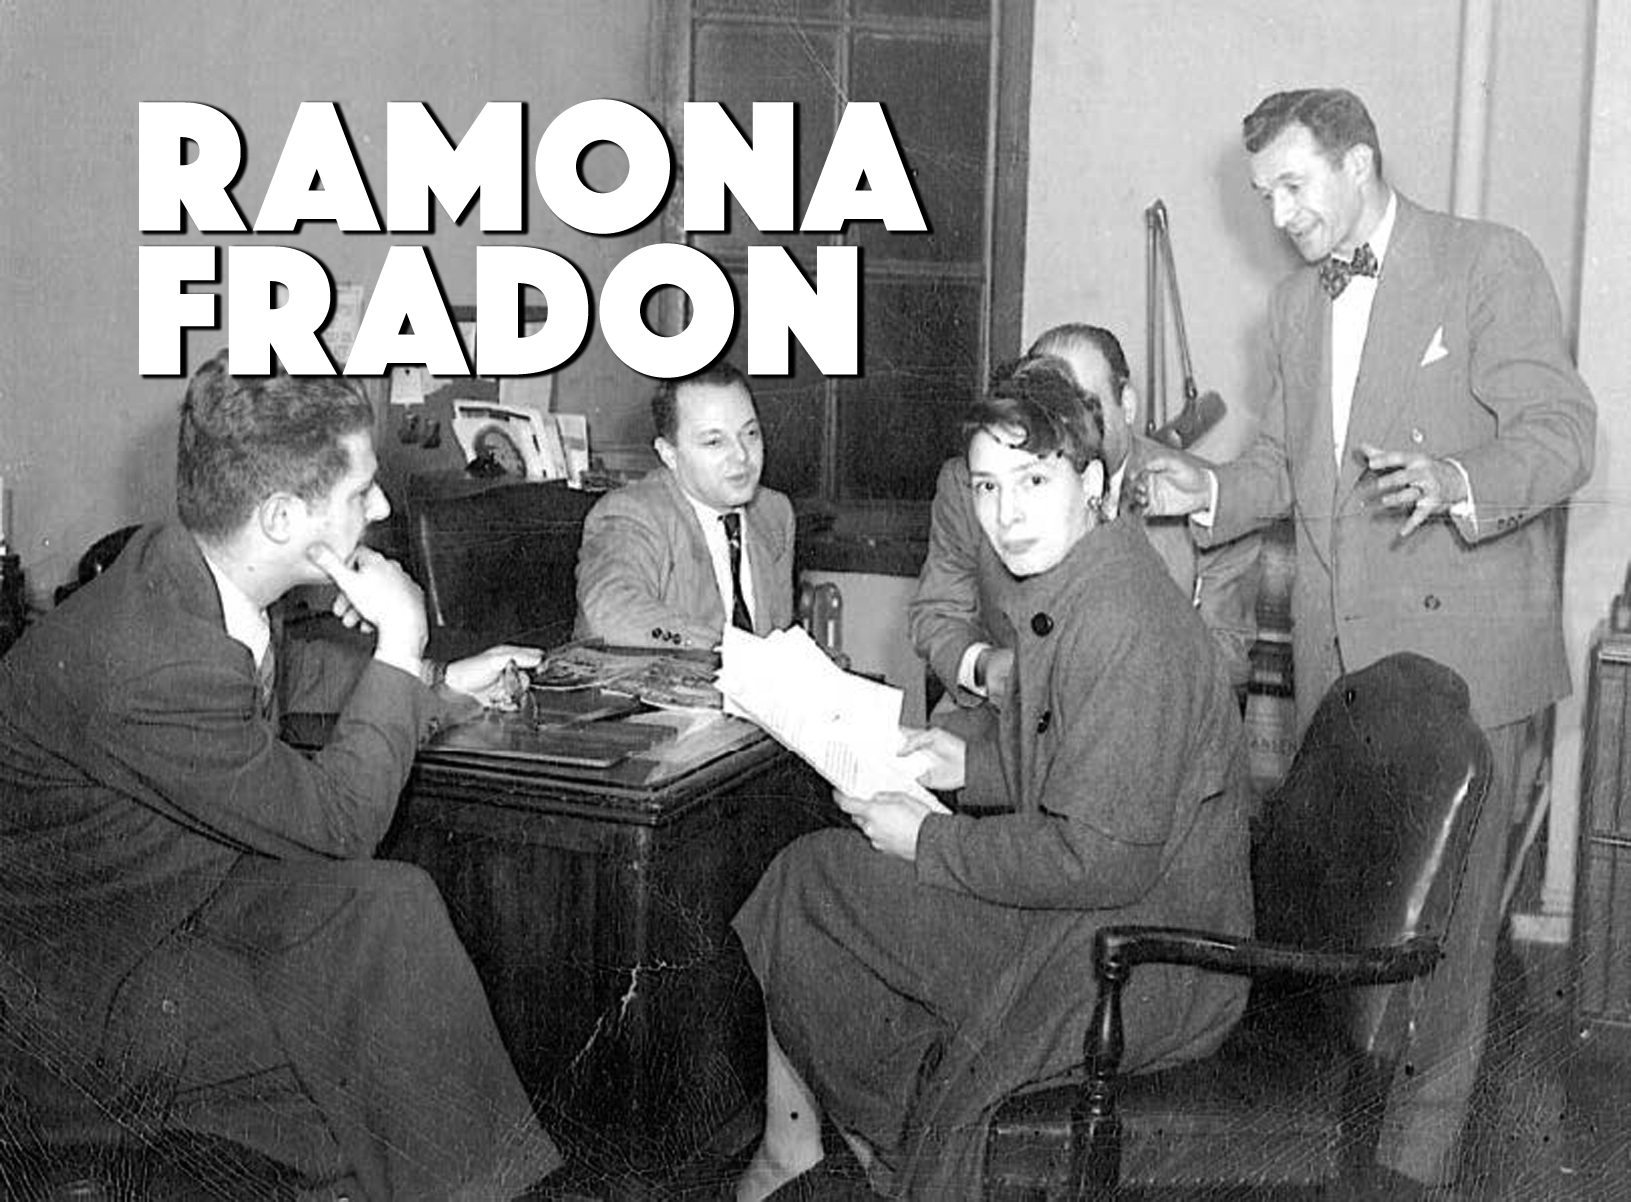 Ramona Fradon sitting in a bullpen, surrounded by male co-workers.